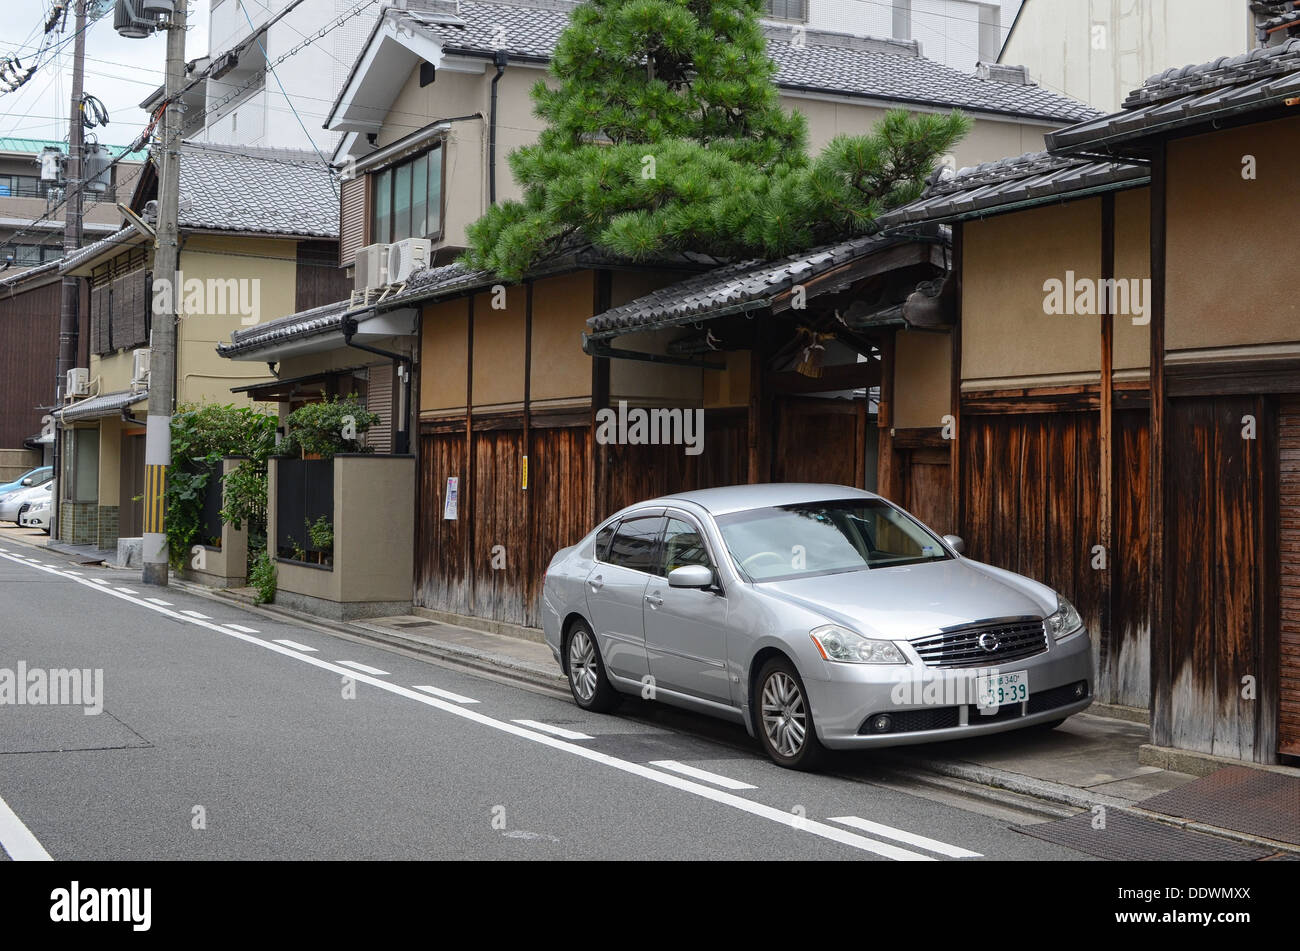 A Nissan car parked in a street in Kyoto, Japan. Stock Photo